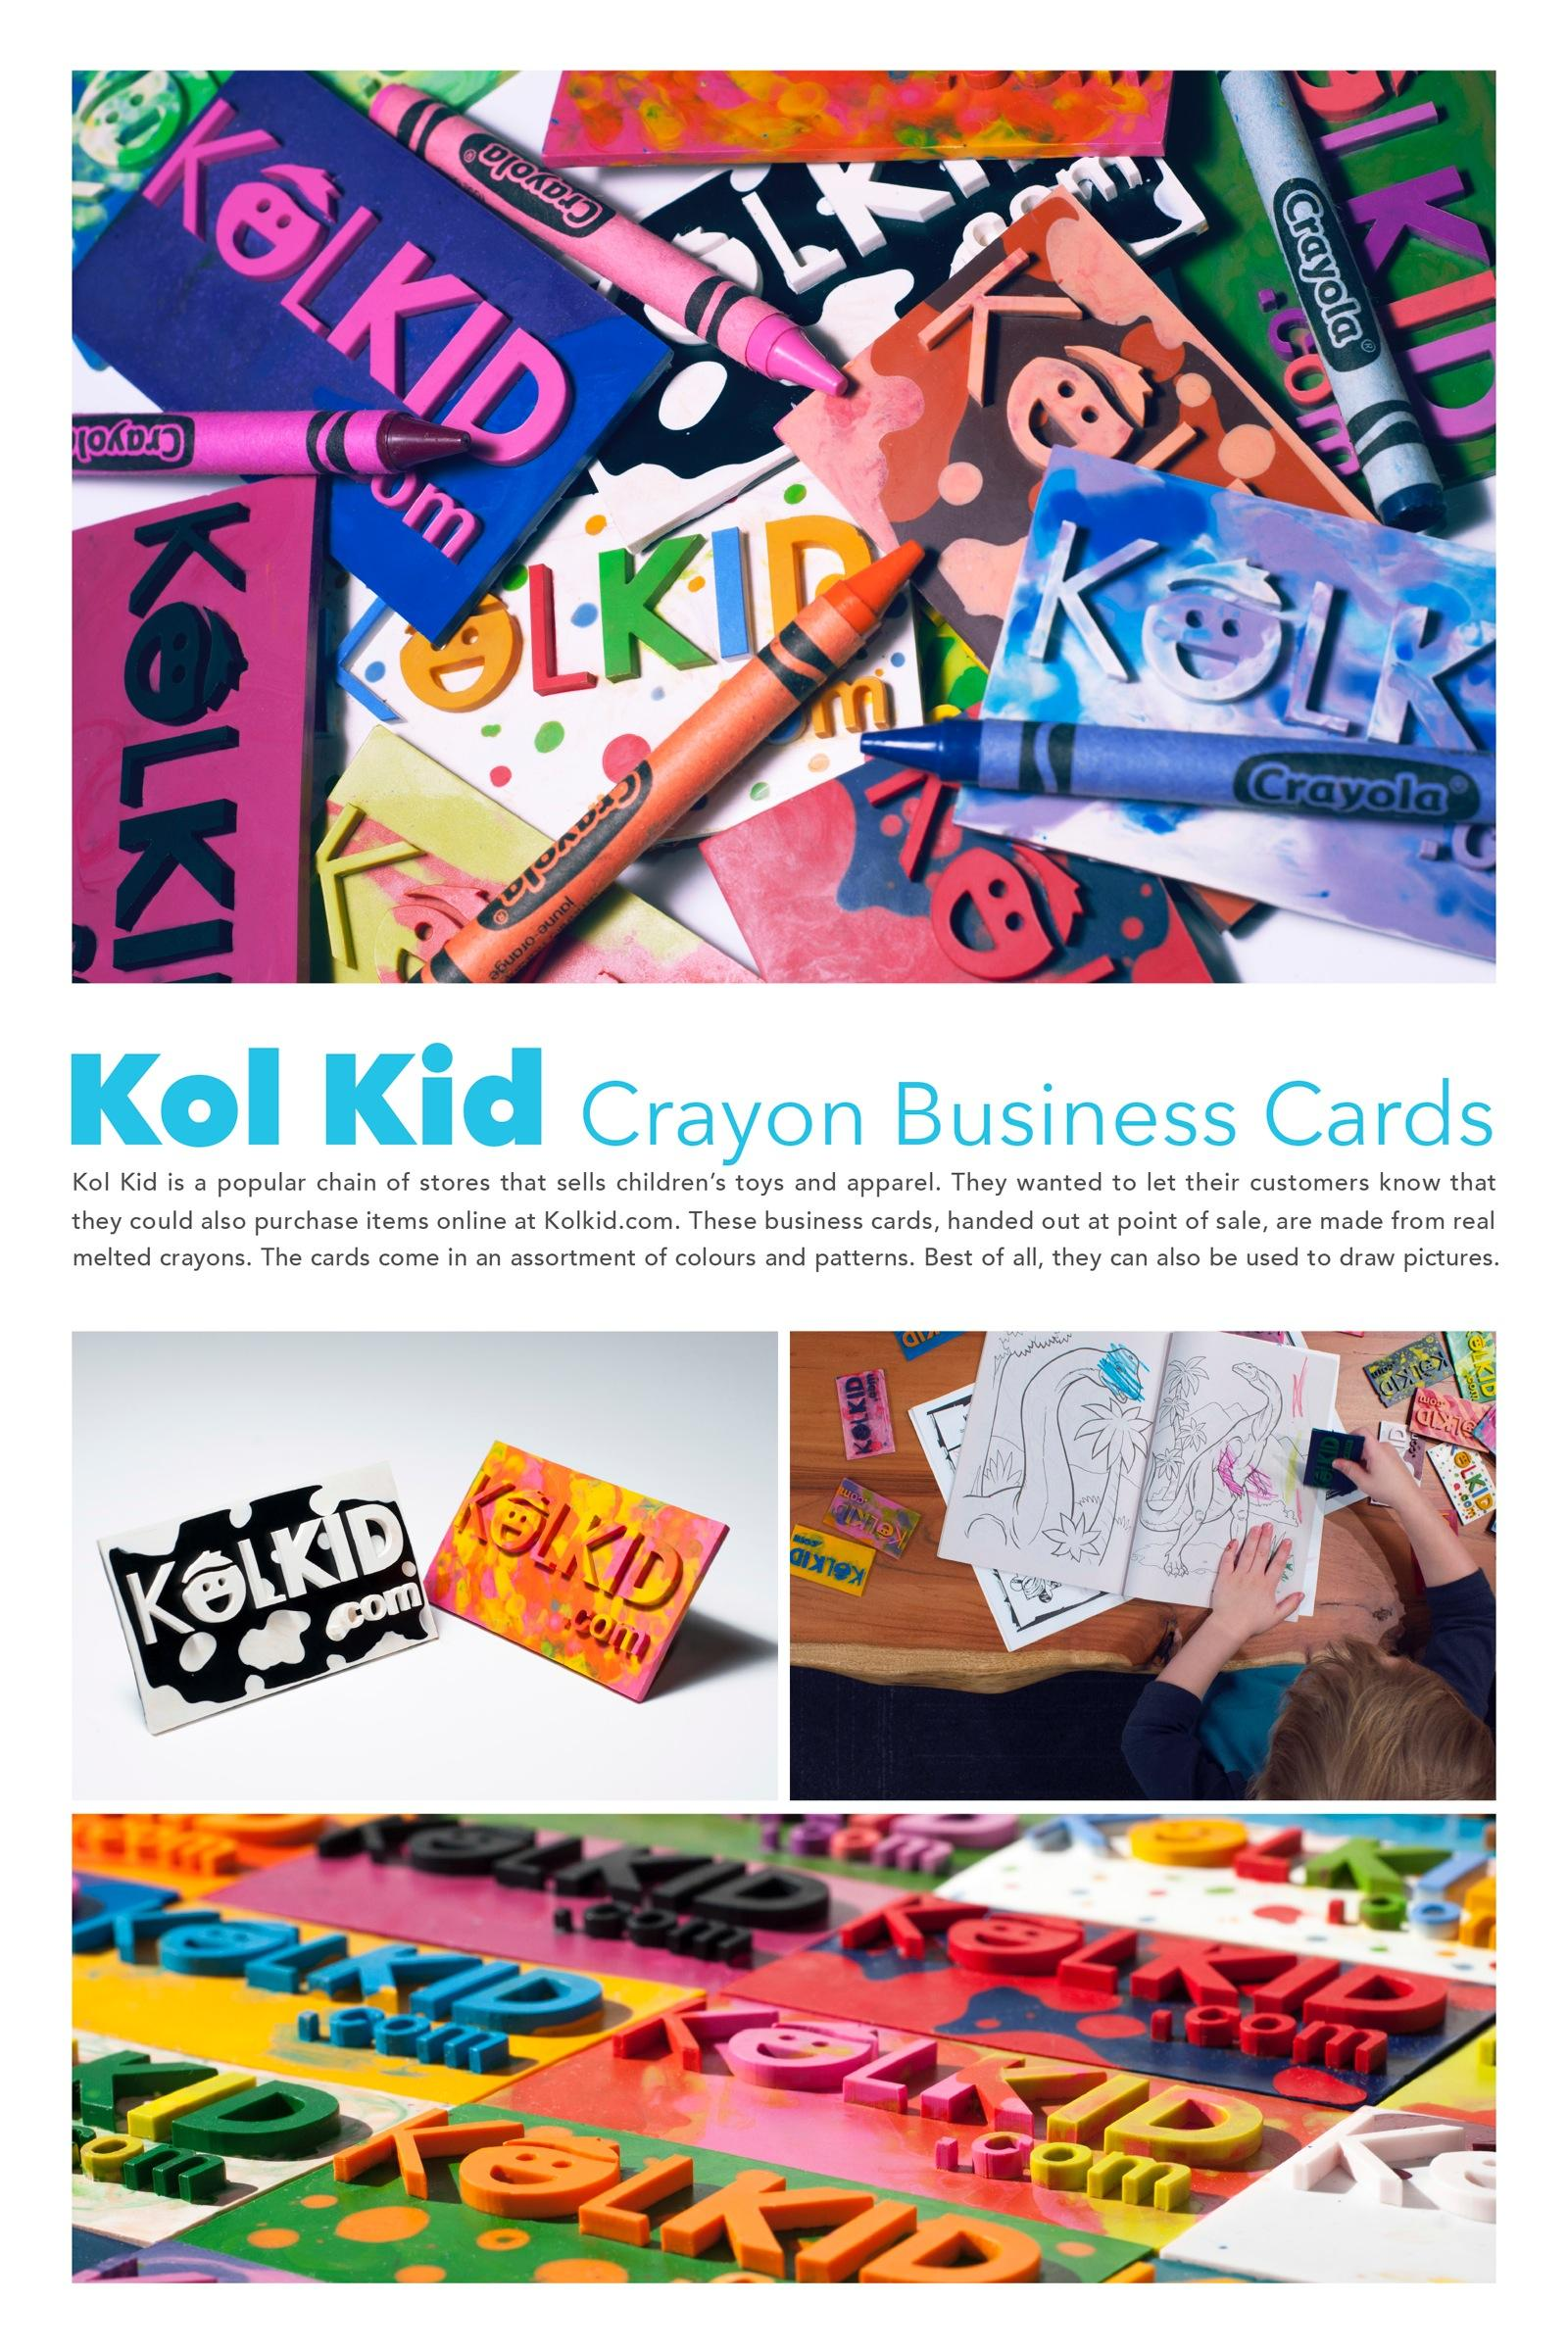 Kol Kid Direct Advert By ds+p: Kol Kid Crayon Business Cards | Ads ...